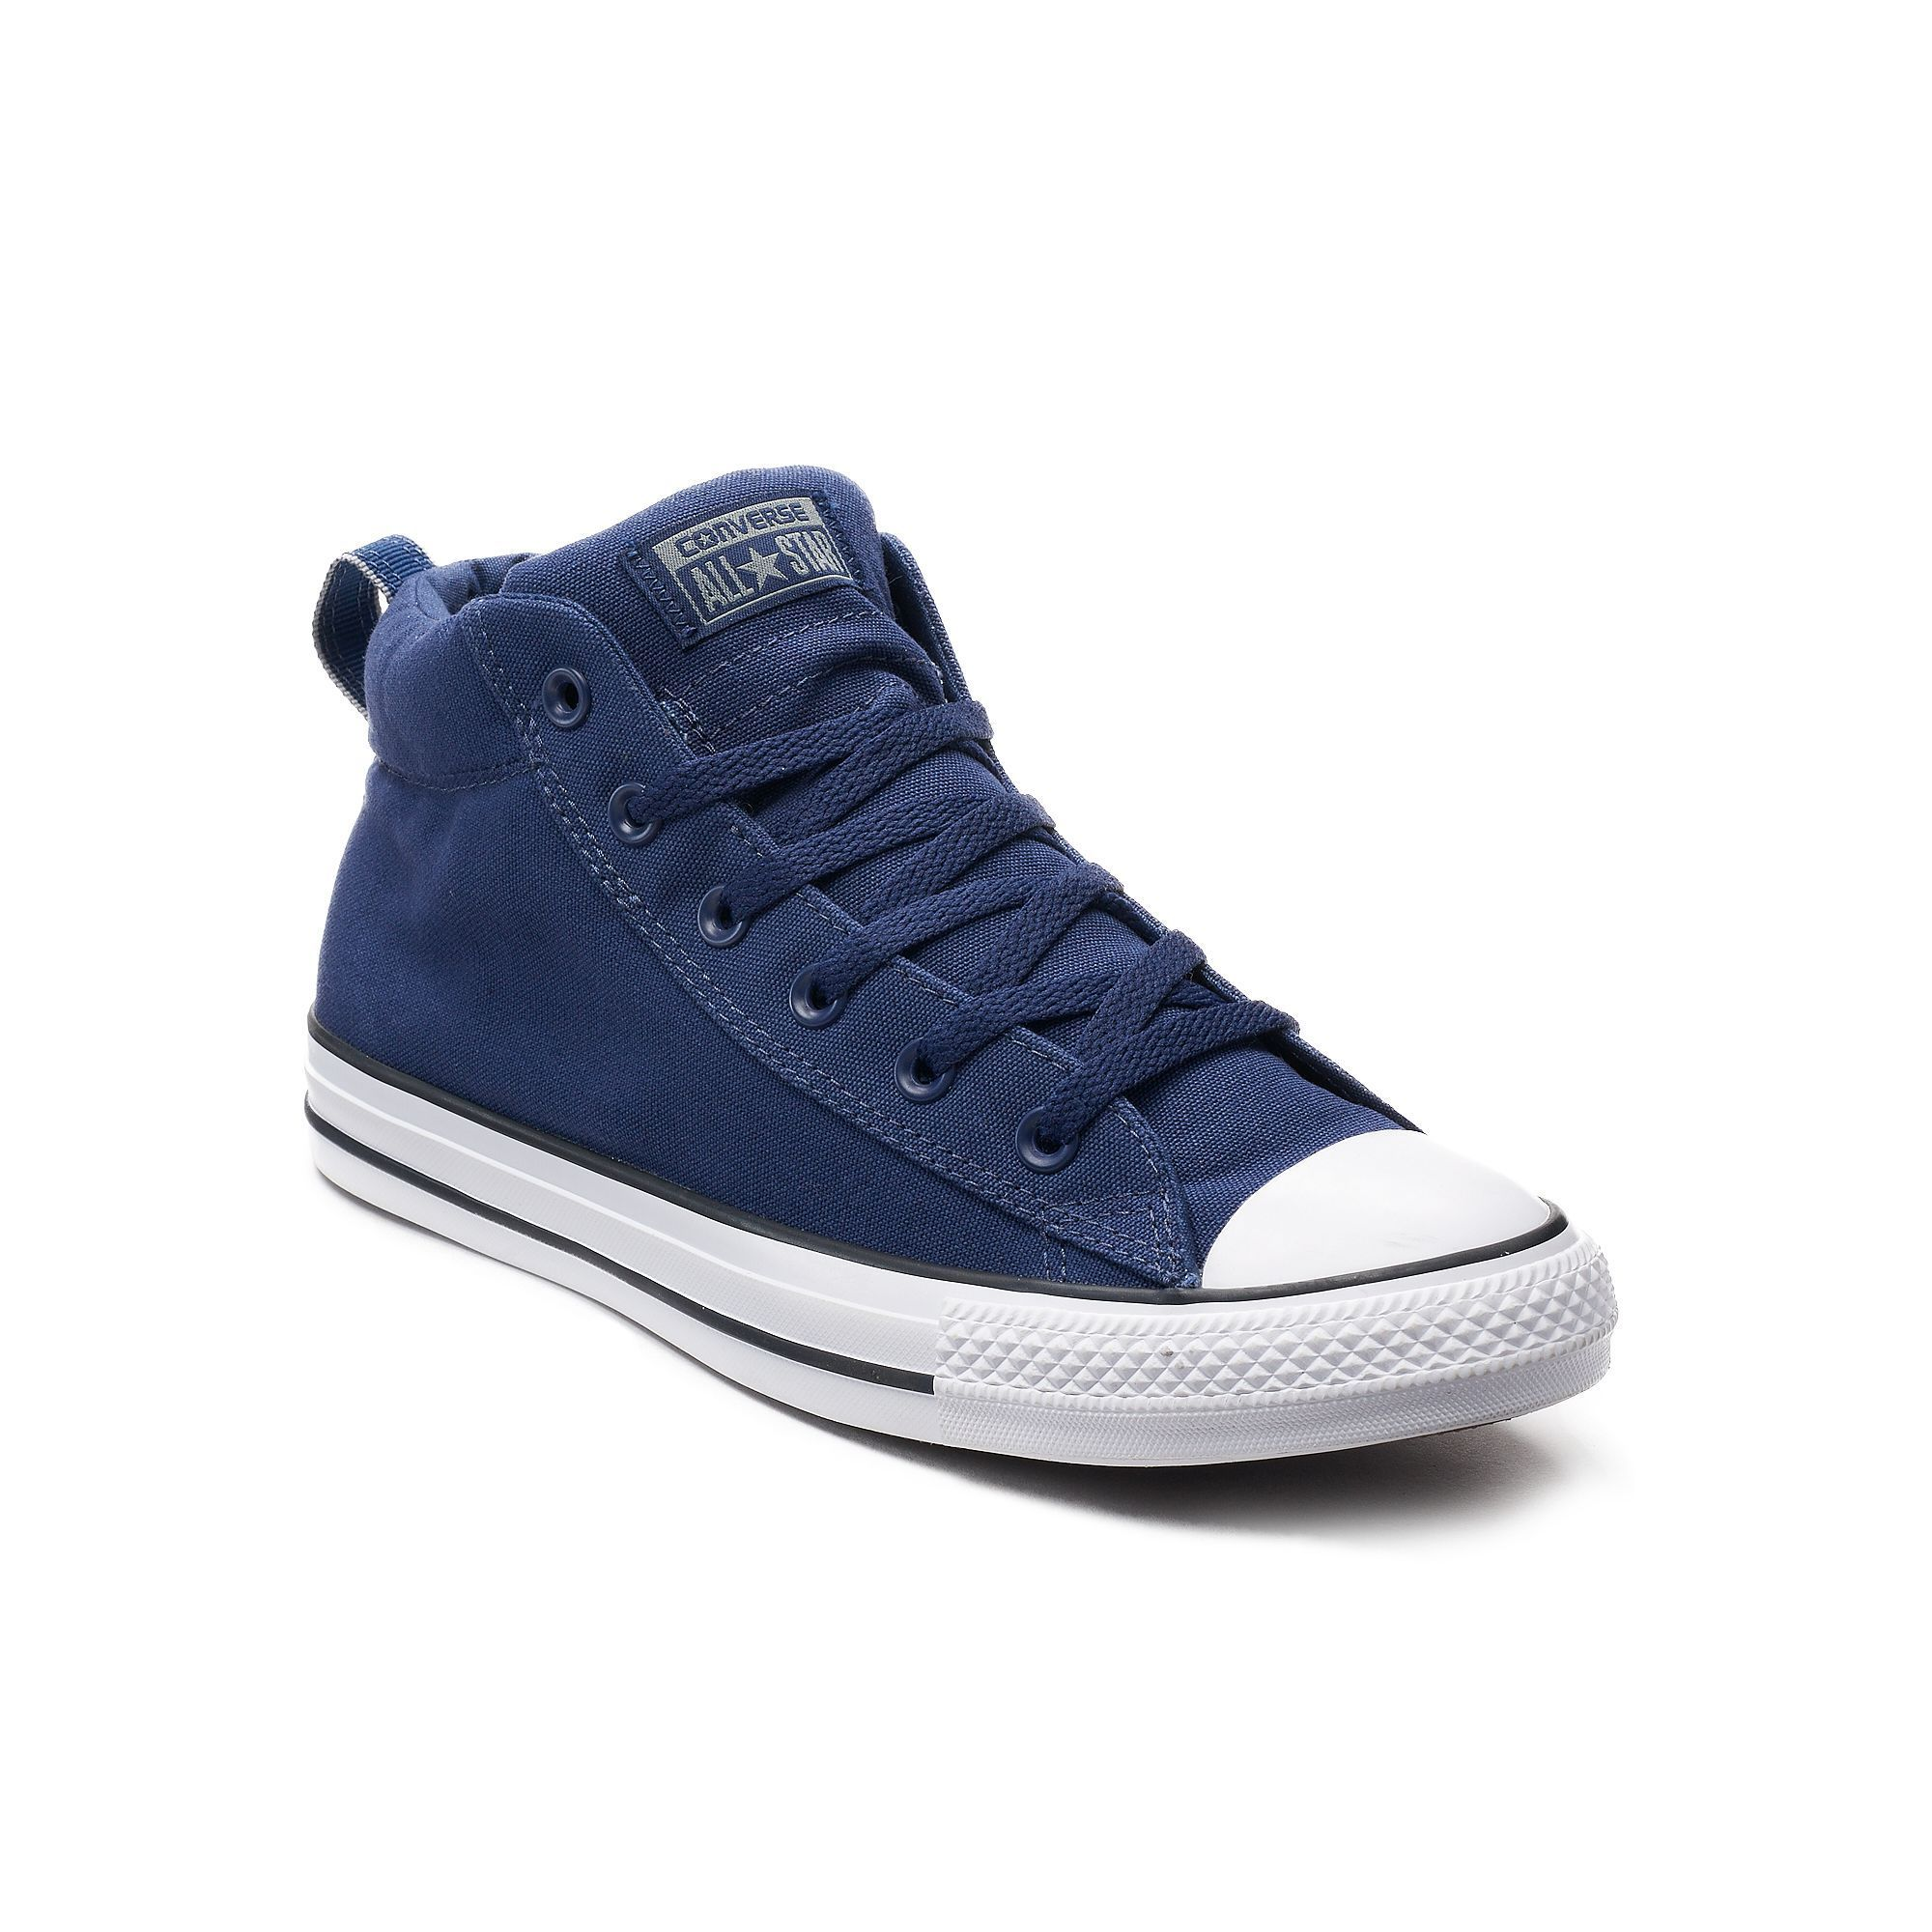 a6999a7c4bd0 Converse Adult Chuck Taylor All Star Street Mid Sneakers